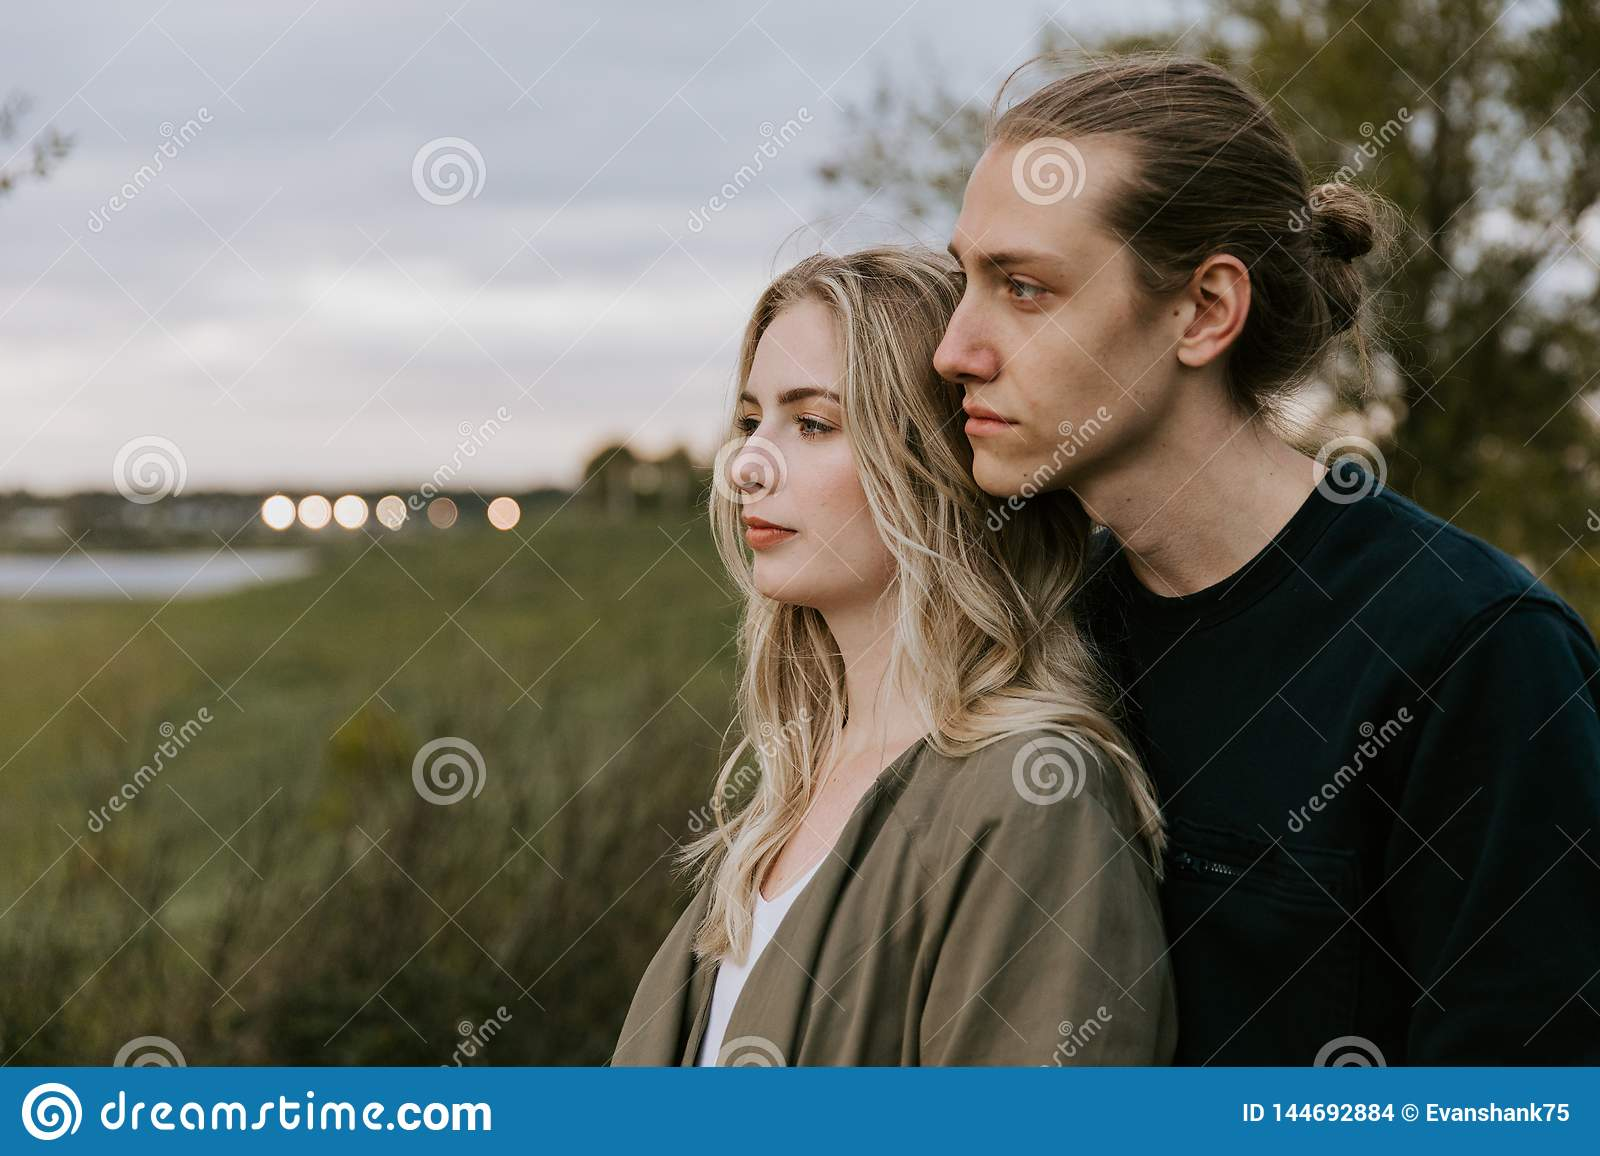 Romantic and Loving Young Adult Couple at the Park Looking At Nature and the Horizon for Portrait Pictures